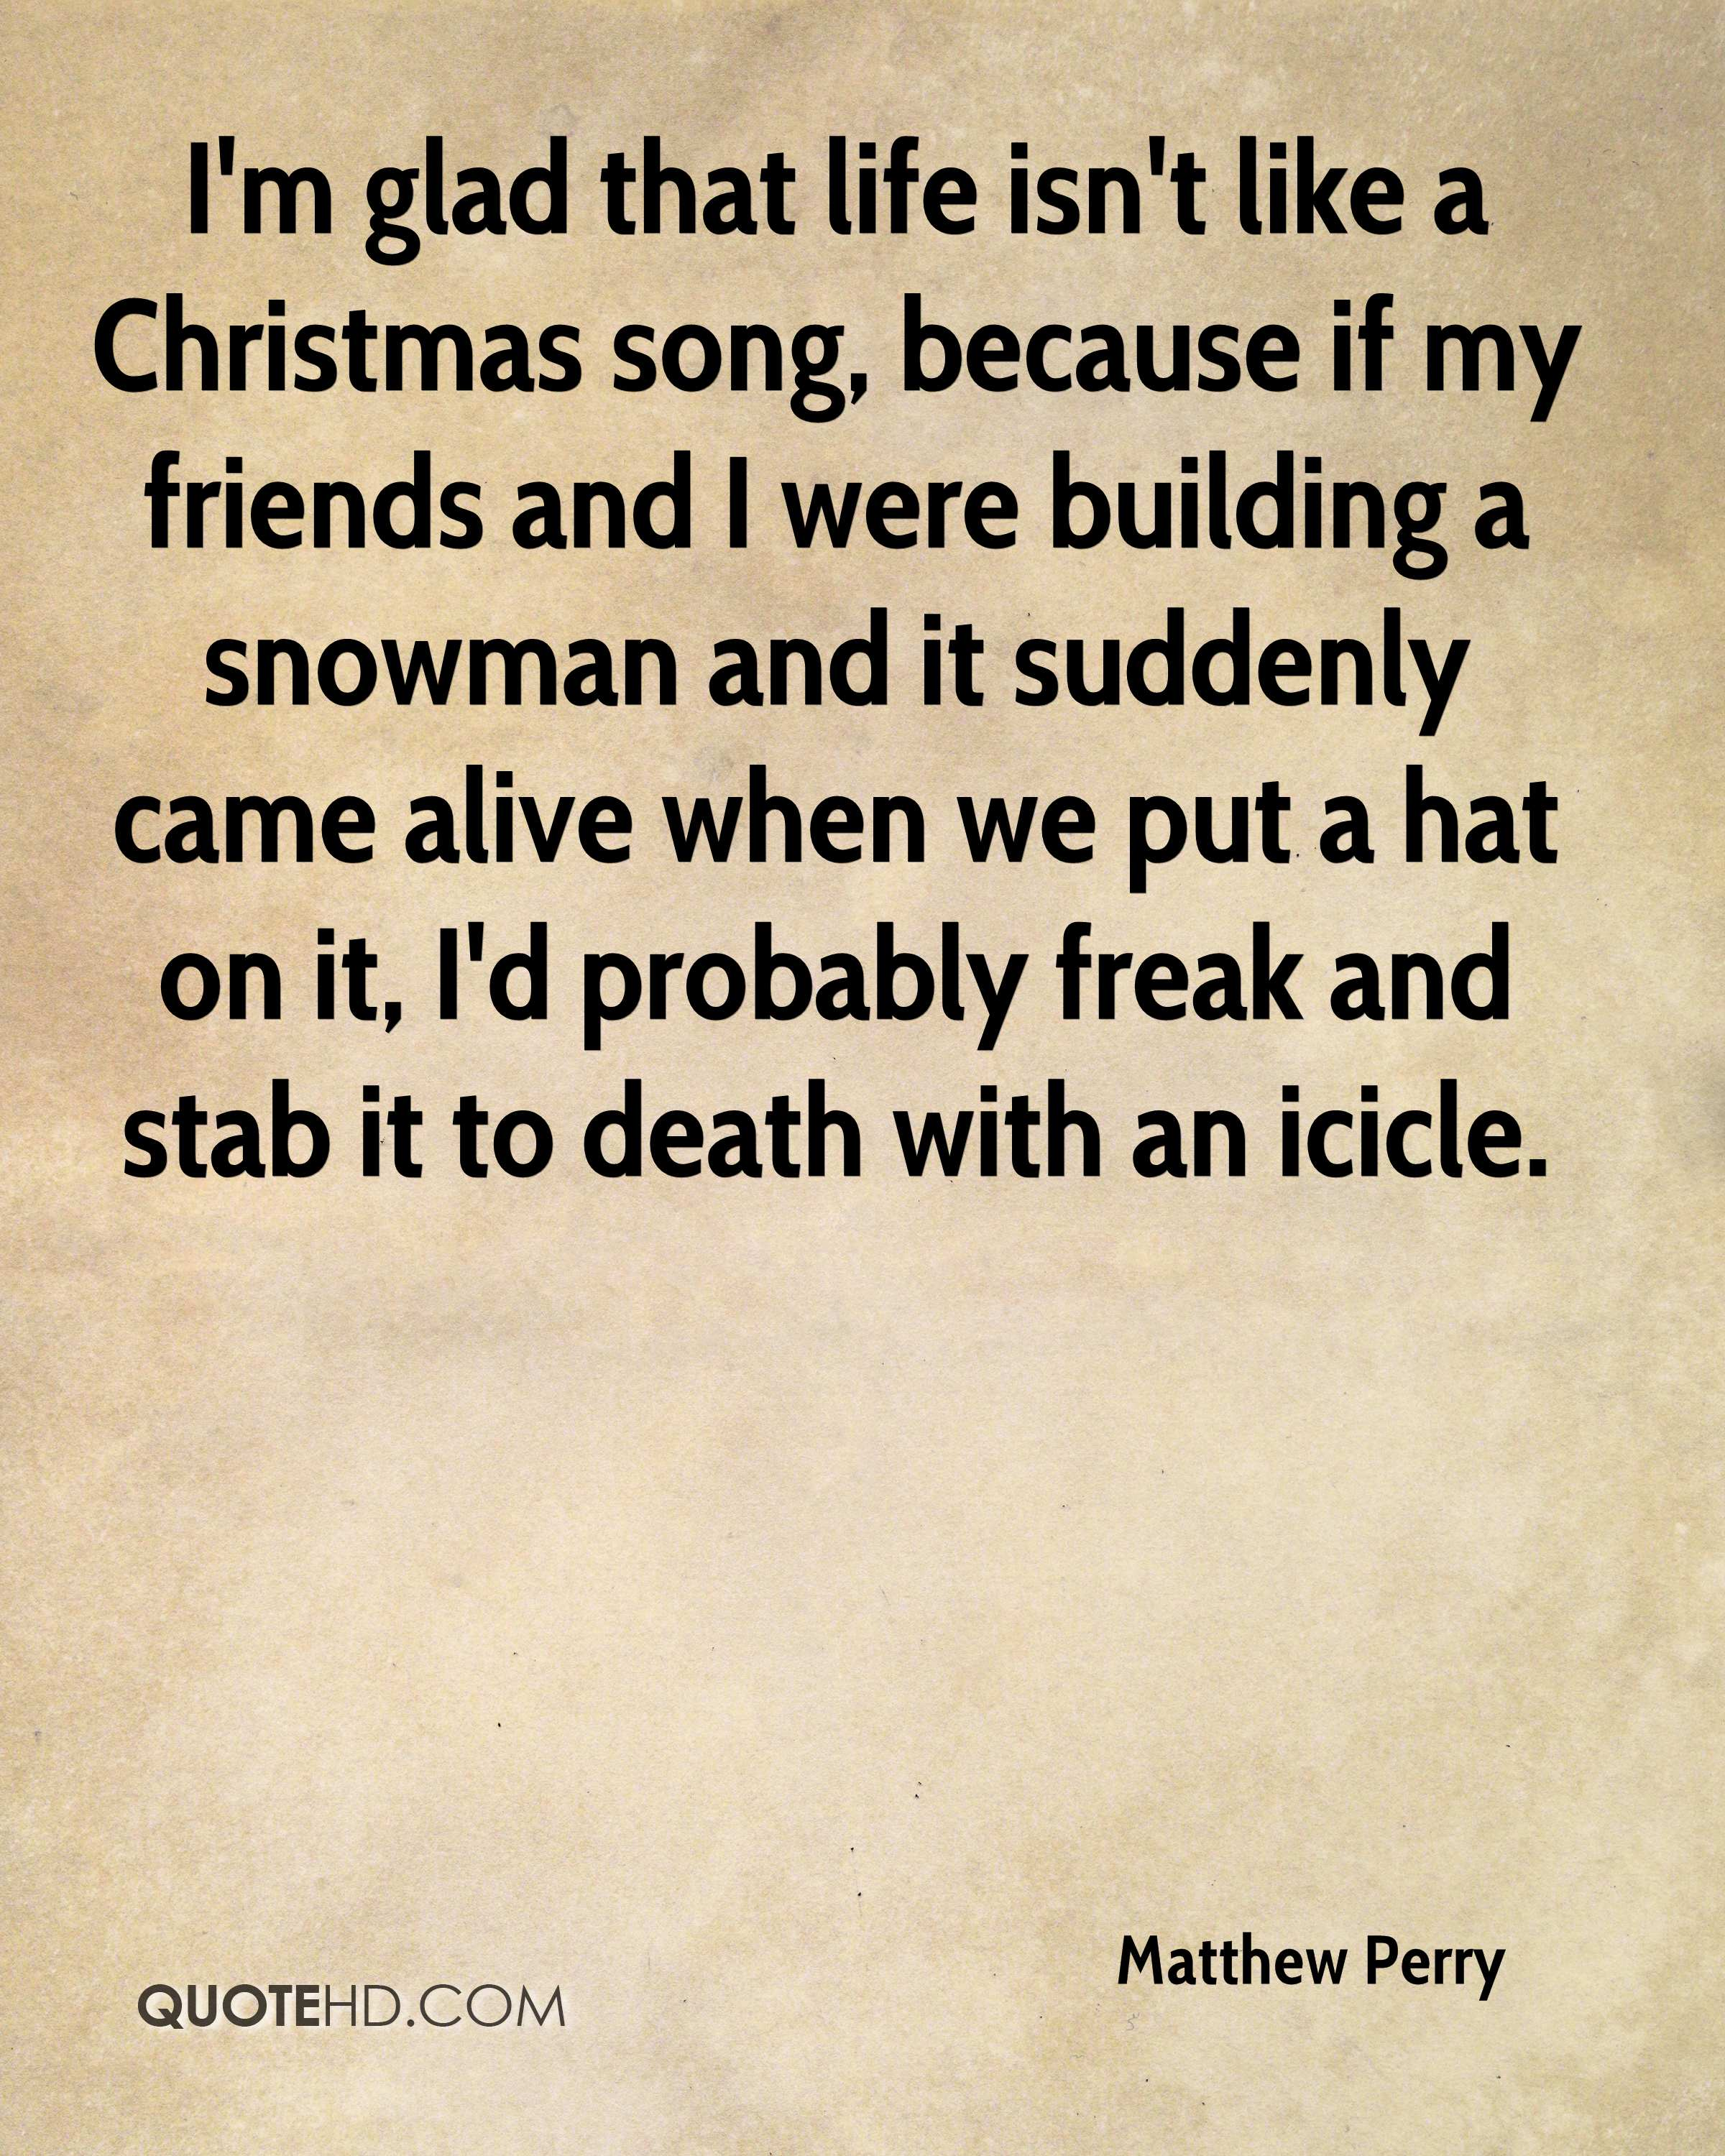 I'm glad that life isn't like a Christmas song, because if my friends and I were building a snowman and it suddenly came alive when we put a hat on it, I'd probably freak and stab it to death with an icicle.